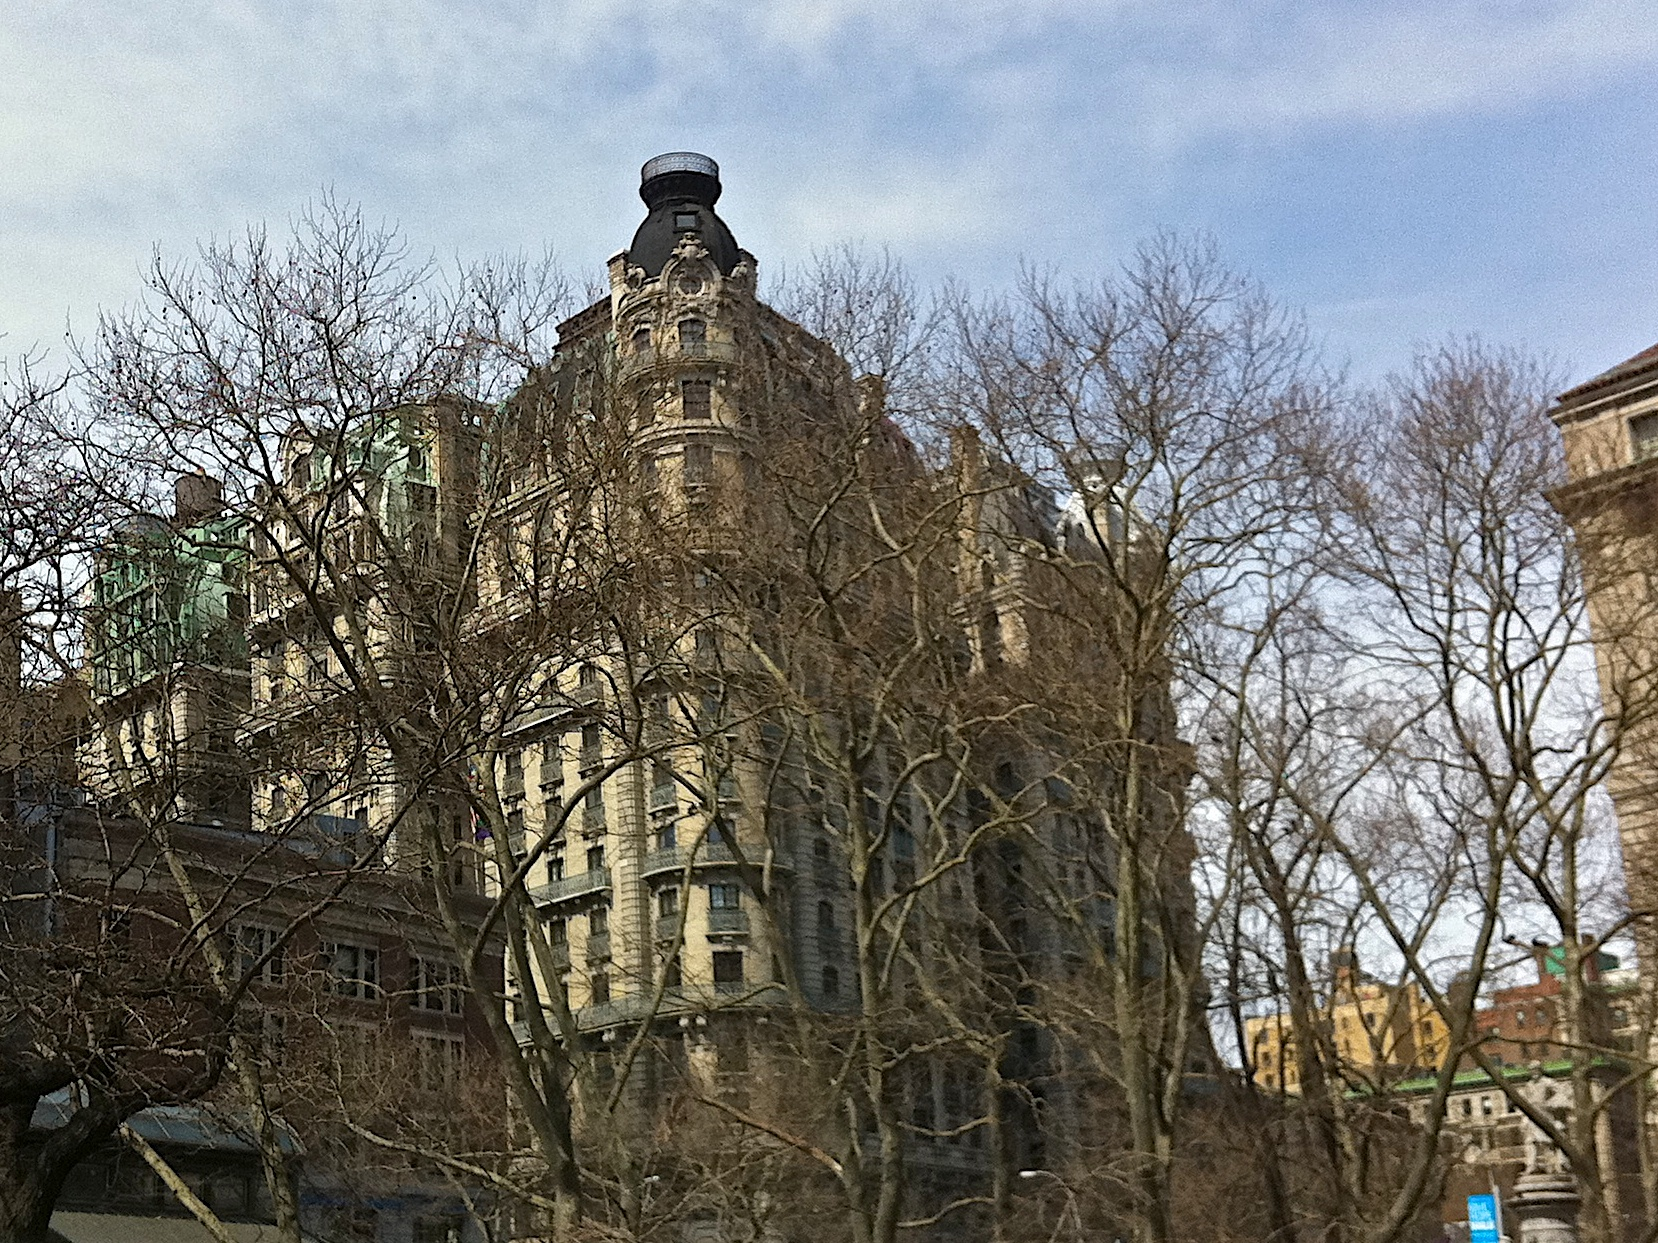 Day 83 - The Ansonia